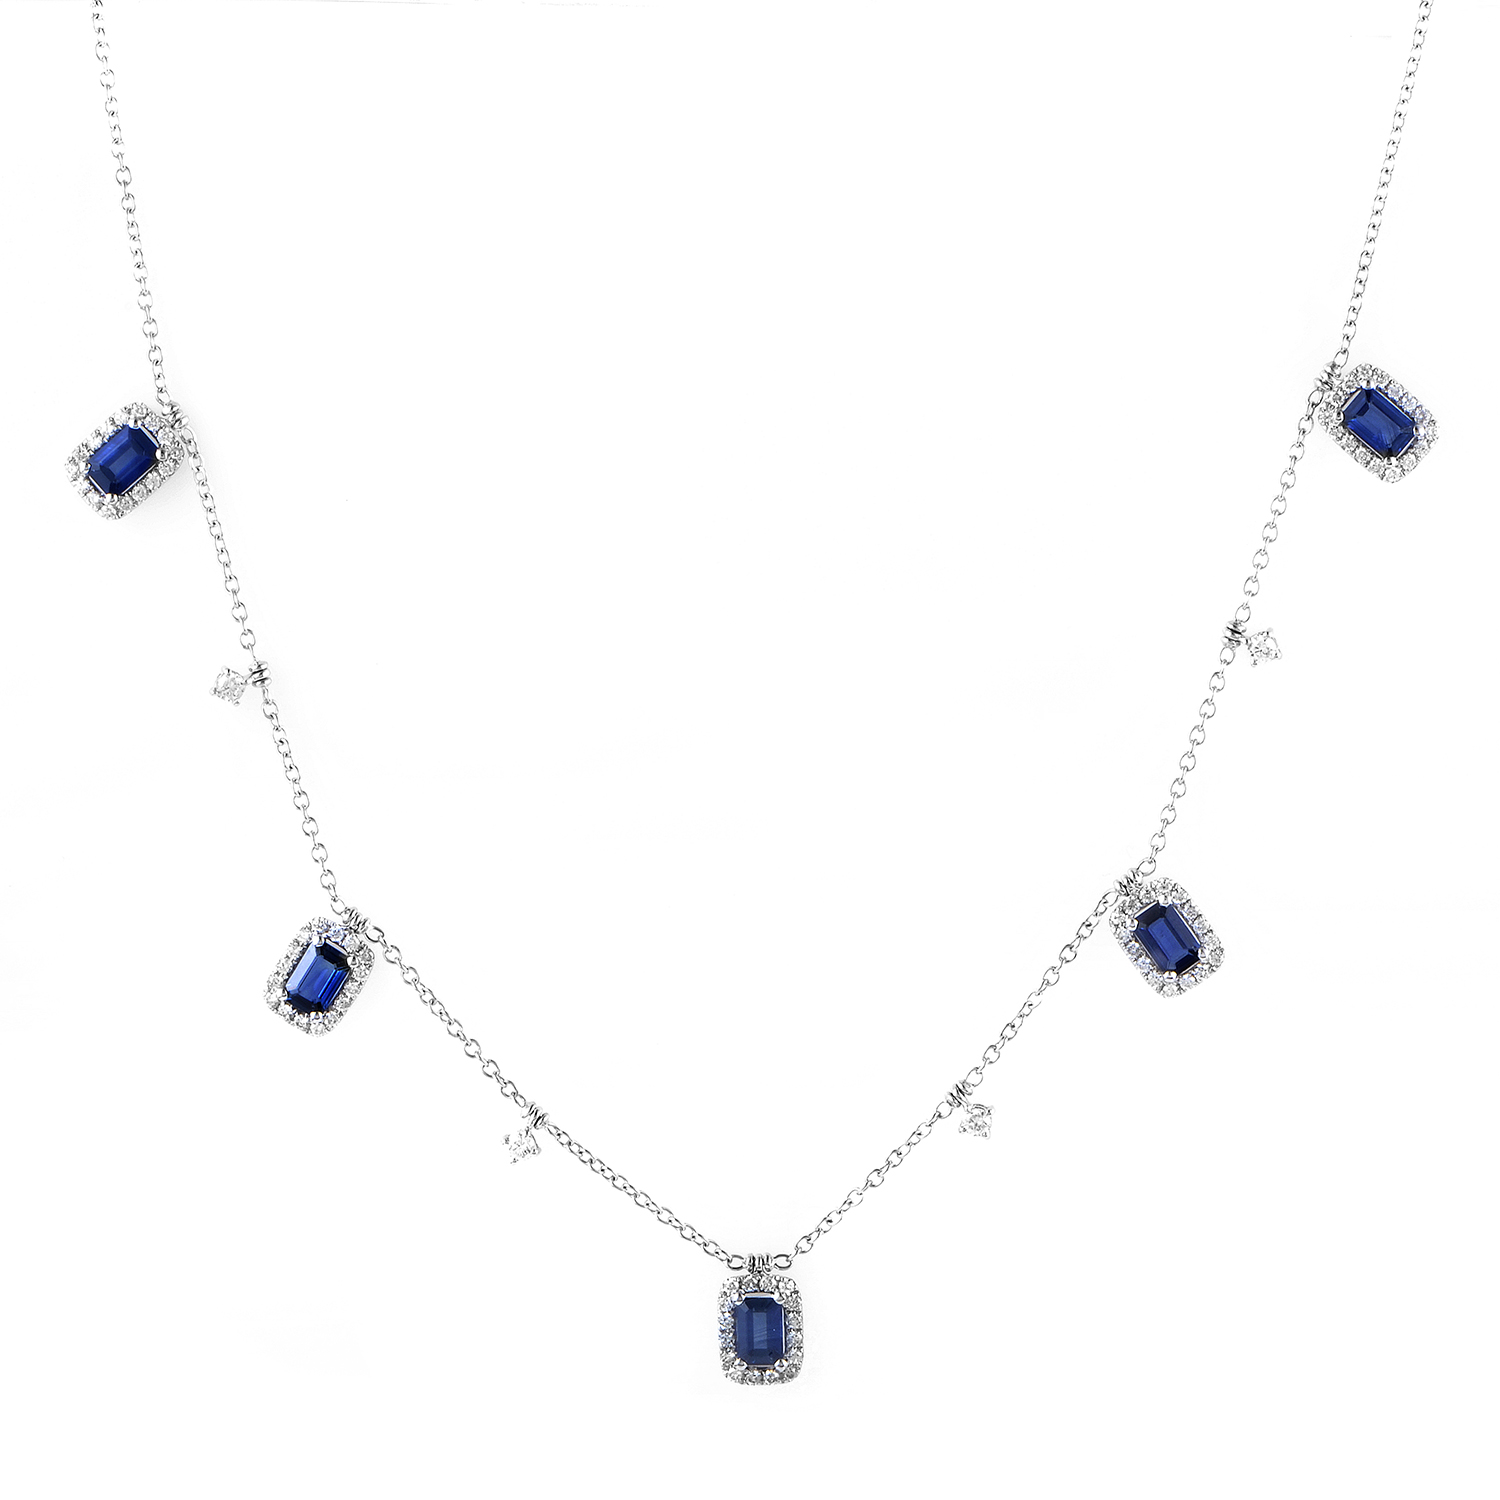 Women's 18K White Gold Dangling Diamond & Sapphire Necklace KESB8912NTBZ5SA